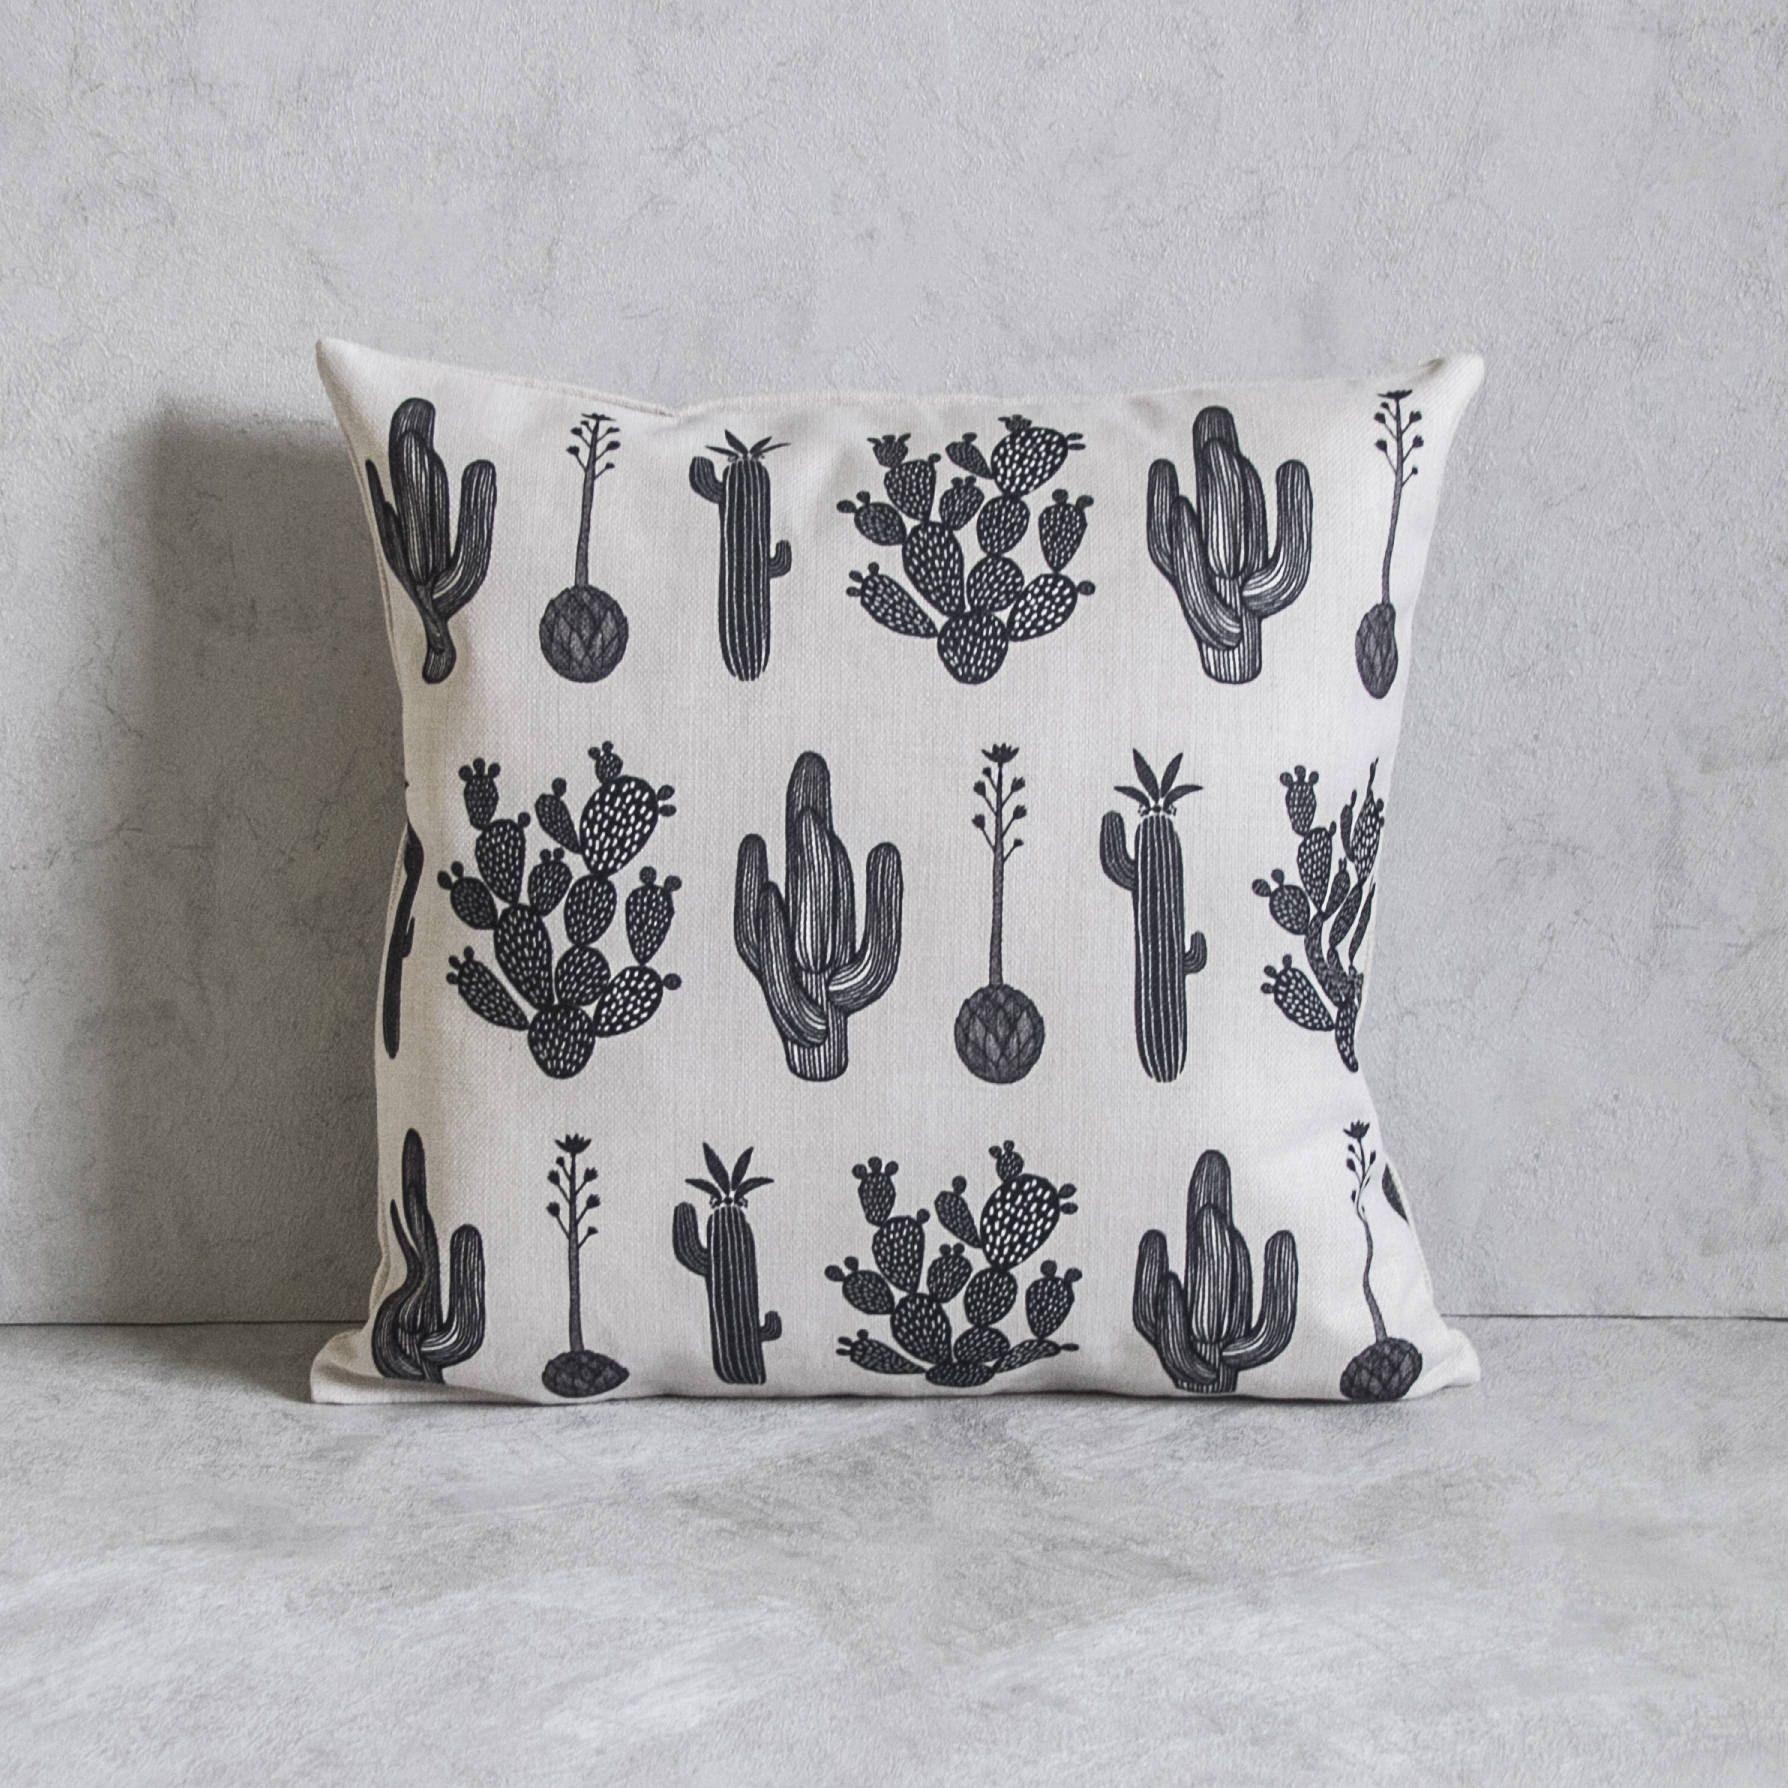 Black And White Cactus Pillow Cover Pillow Covers Throw Etsy Cactus Pillow Pillow Covers Pillows